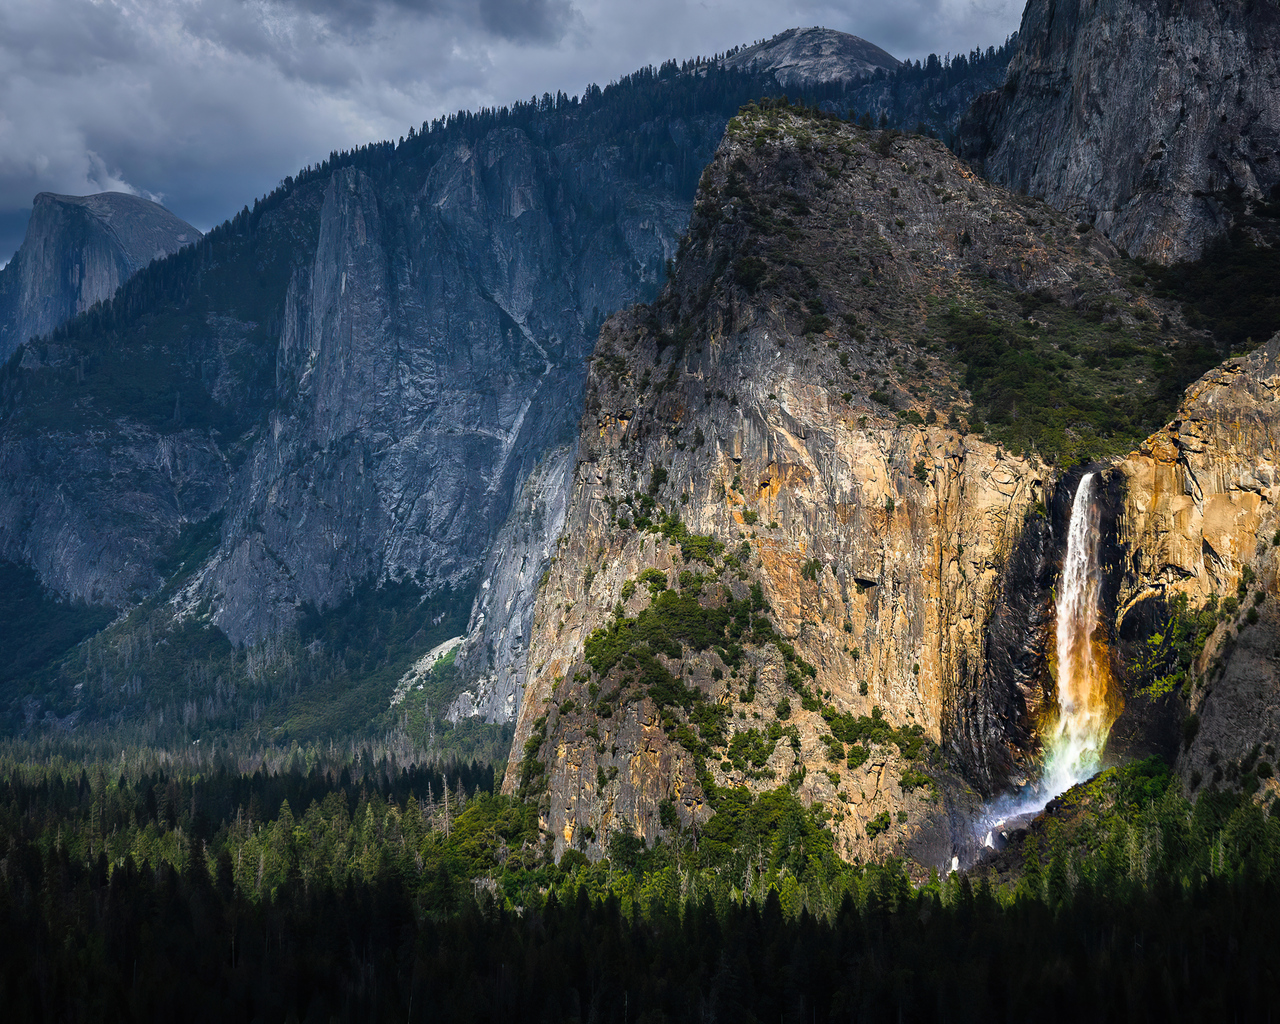 yosemite-national-park-us-4k-42.jpg